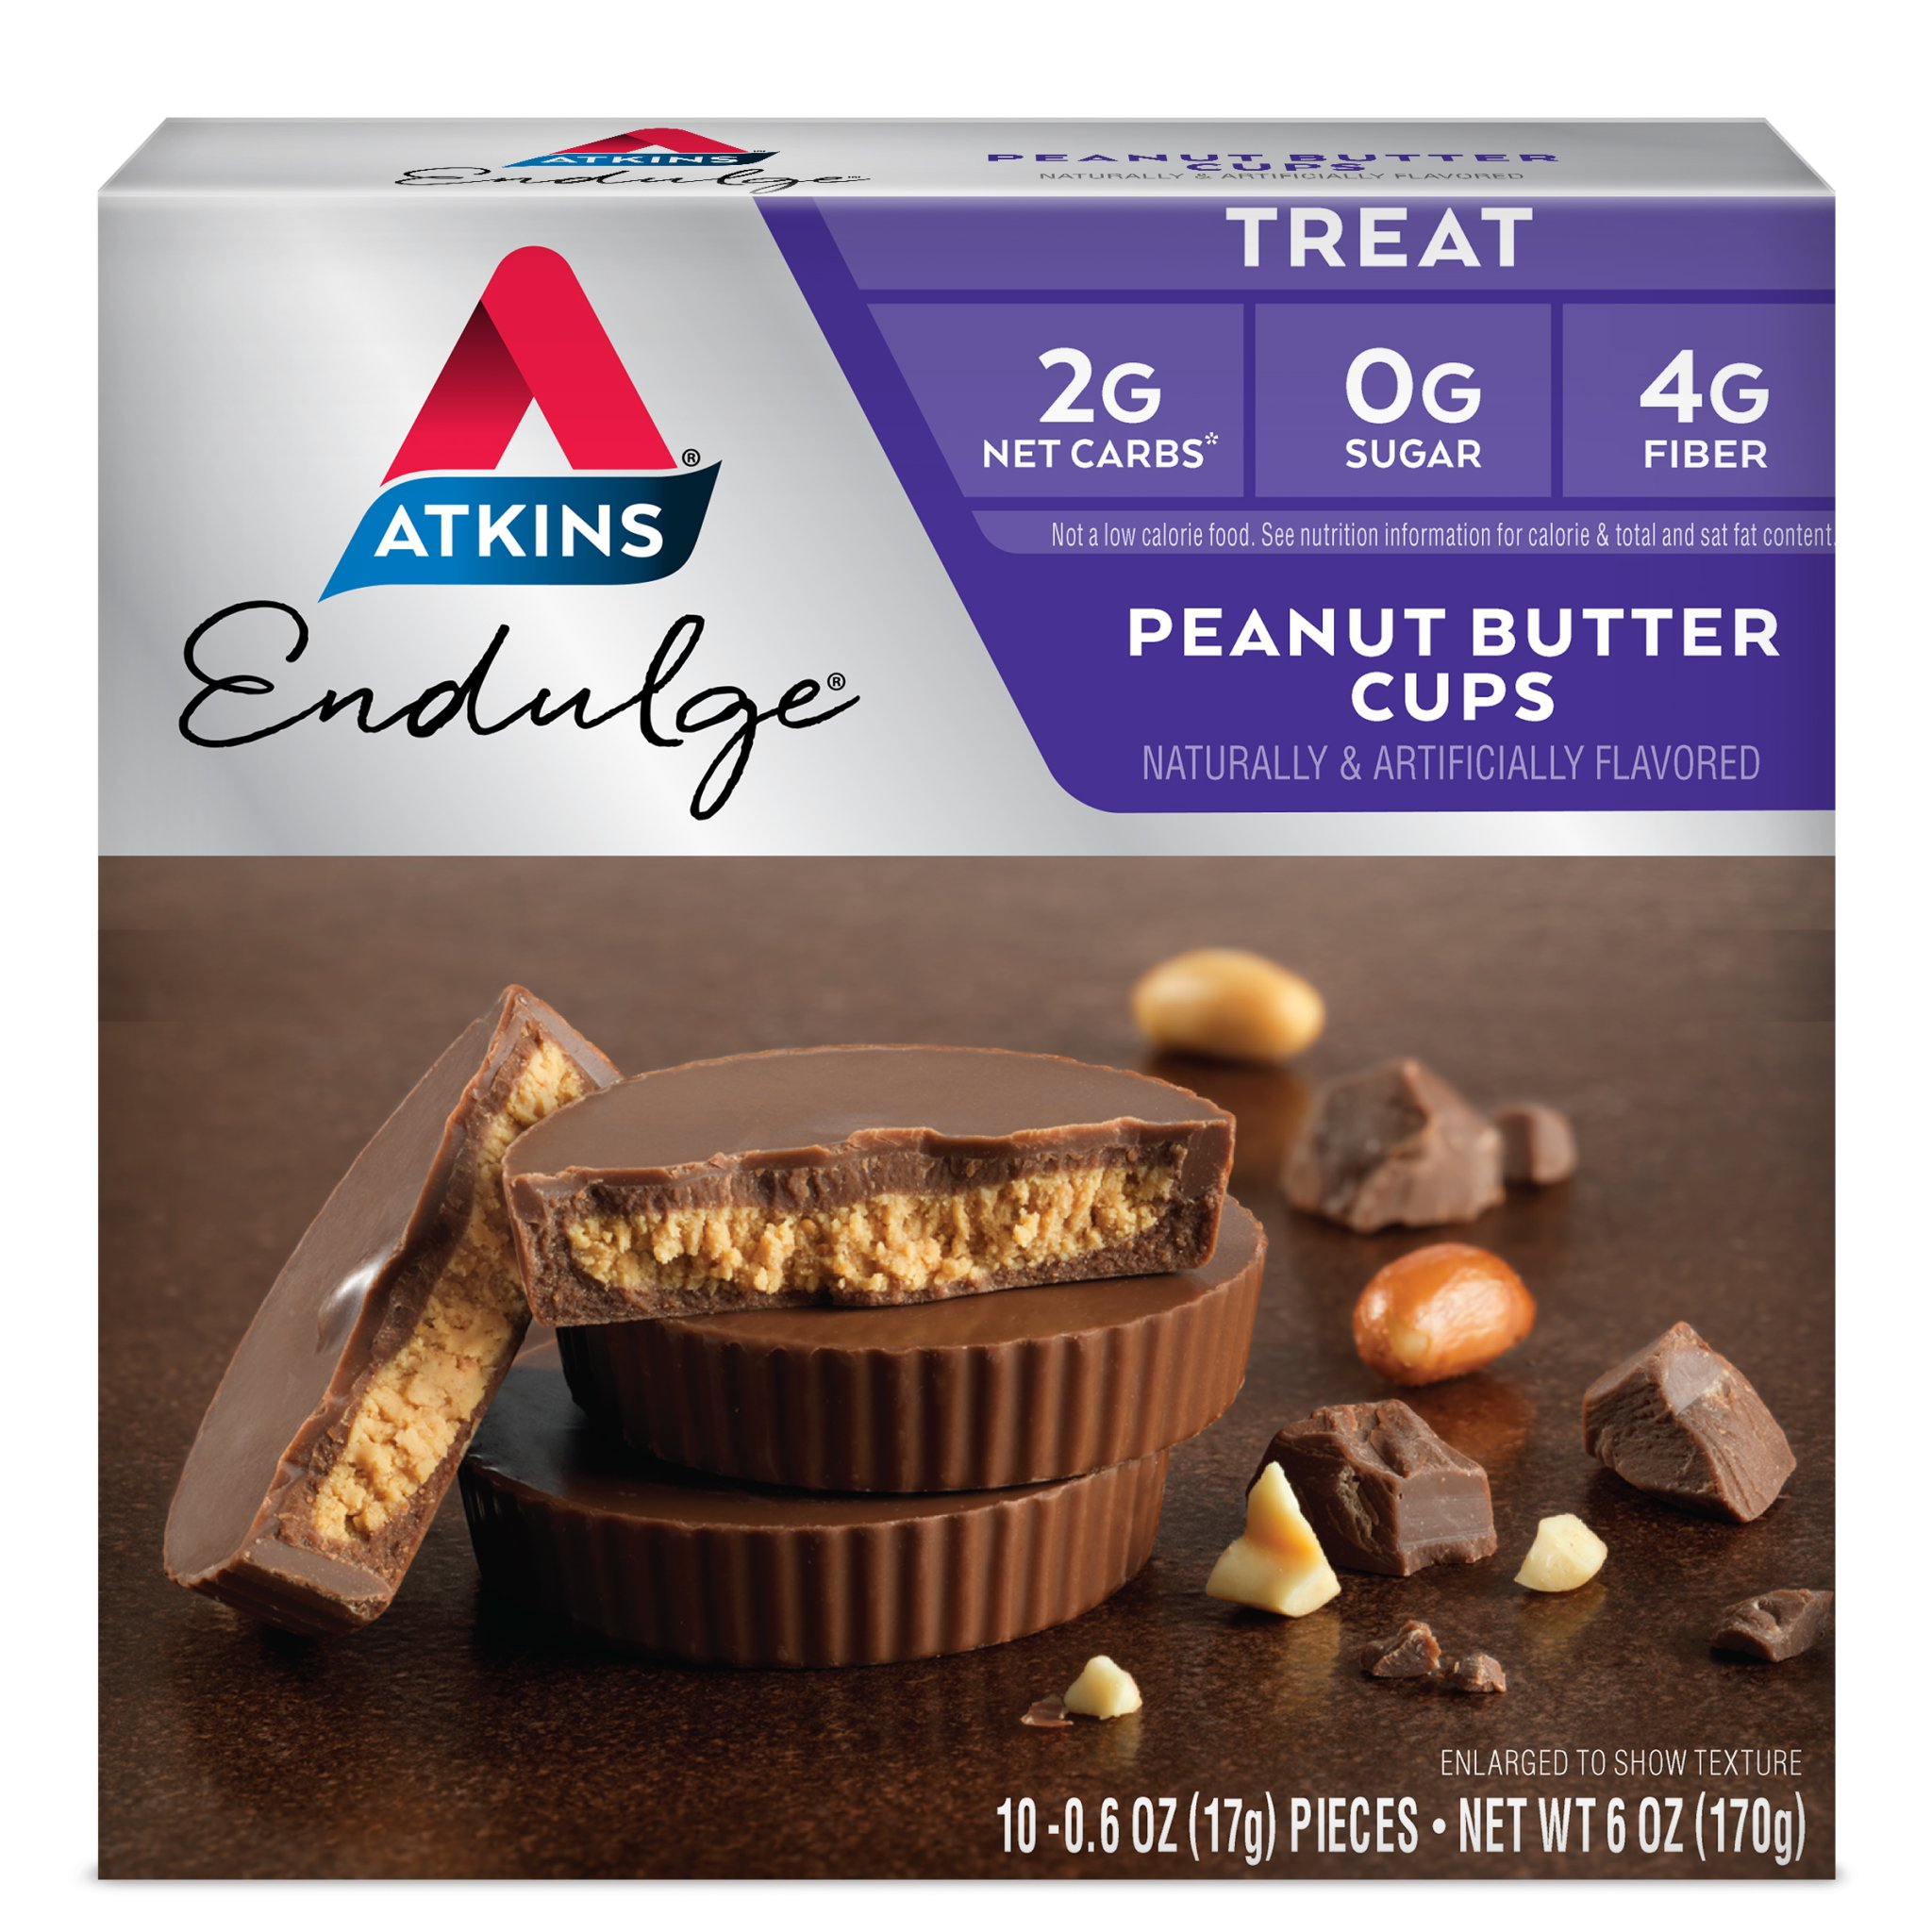 Atkins Endulge Treat, Peanut Butter Cups, Keto Friendly, 60 Count (Value Pack) by Atkins (Image #1)